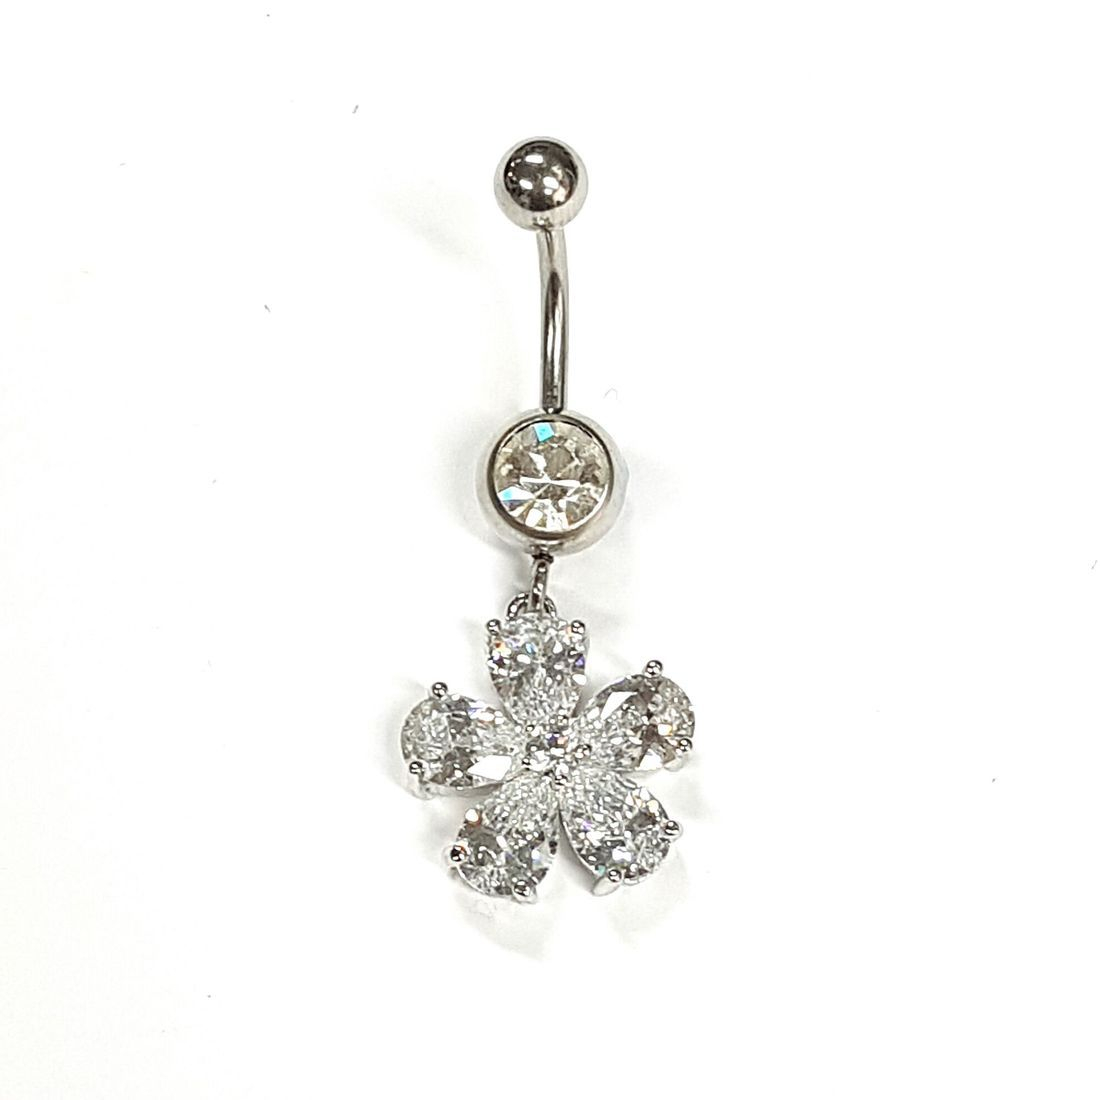 1.6mm x 10mm Clear Large Crystal Flower Titanium Navel Bar  available at Kazbah online and our Leicester City Centre Shop